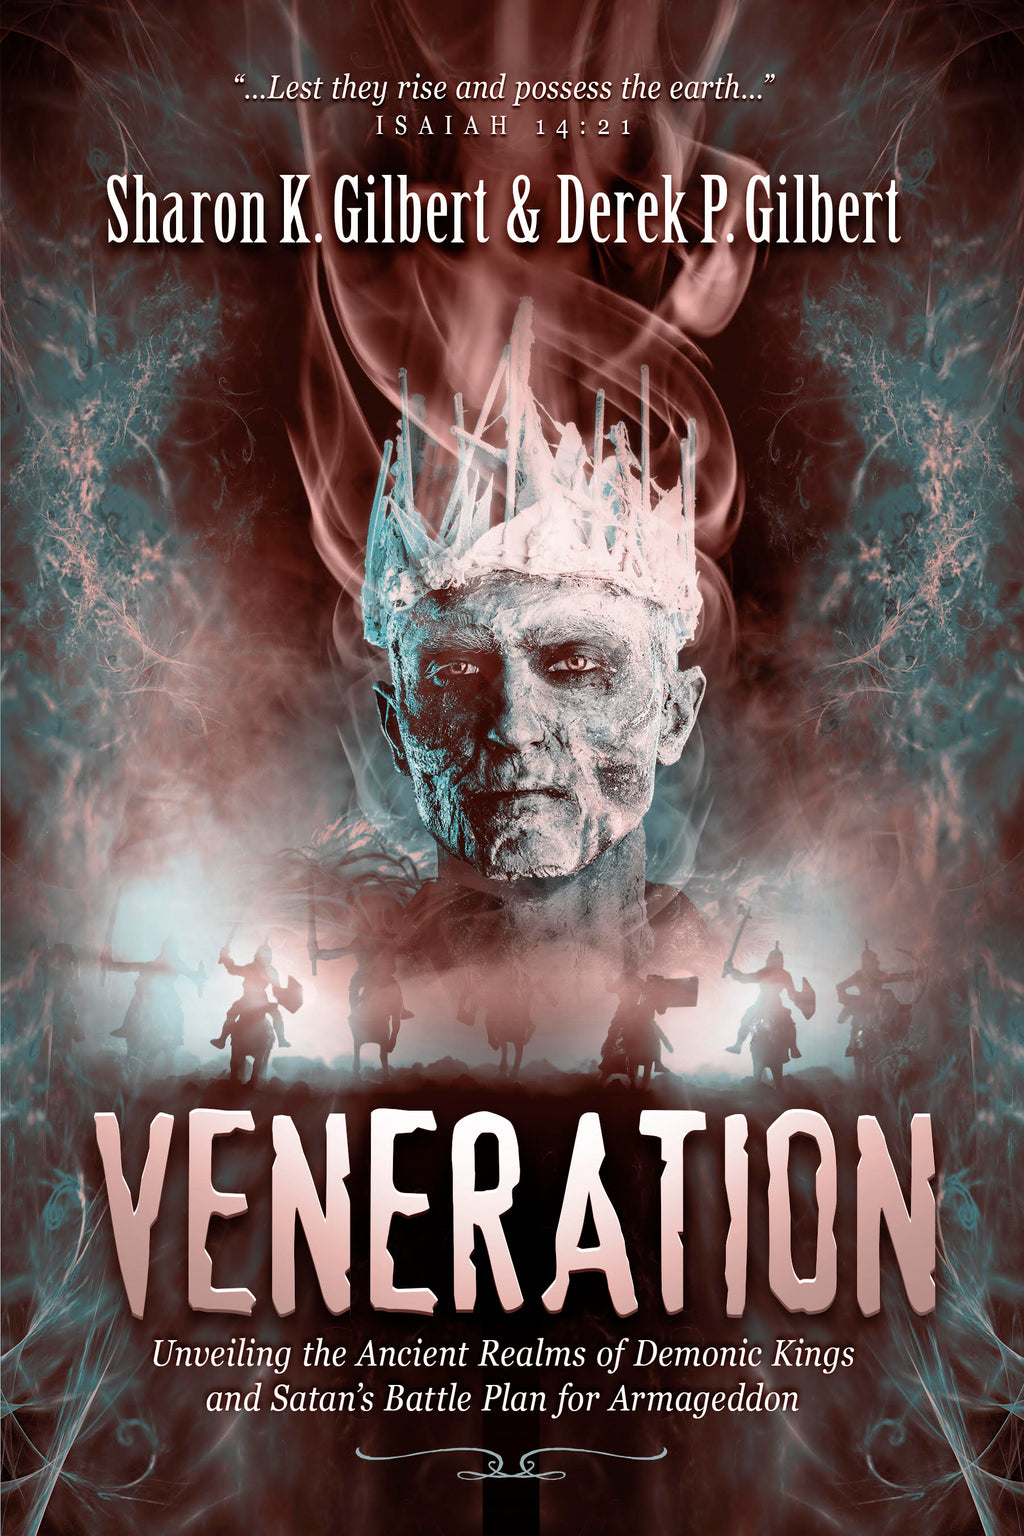 Veneration: Unveiling the Ancient Realms of Demonic Kings and Satan's Battle Plan for Armageddon